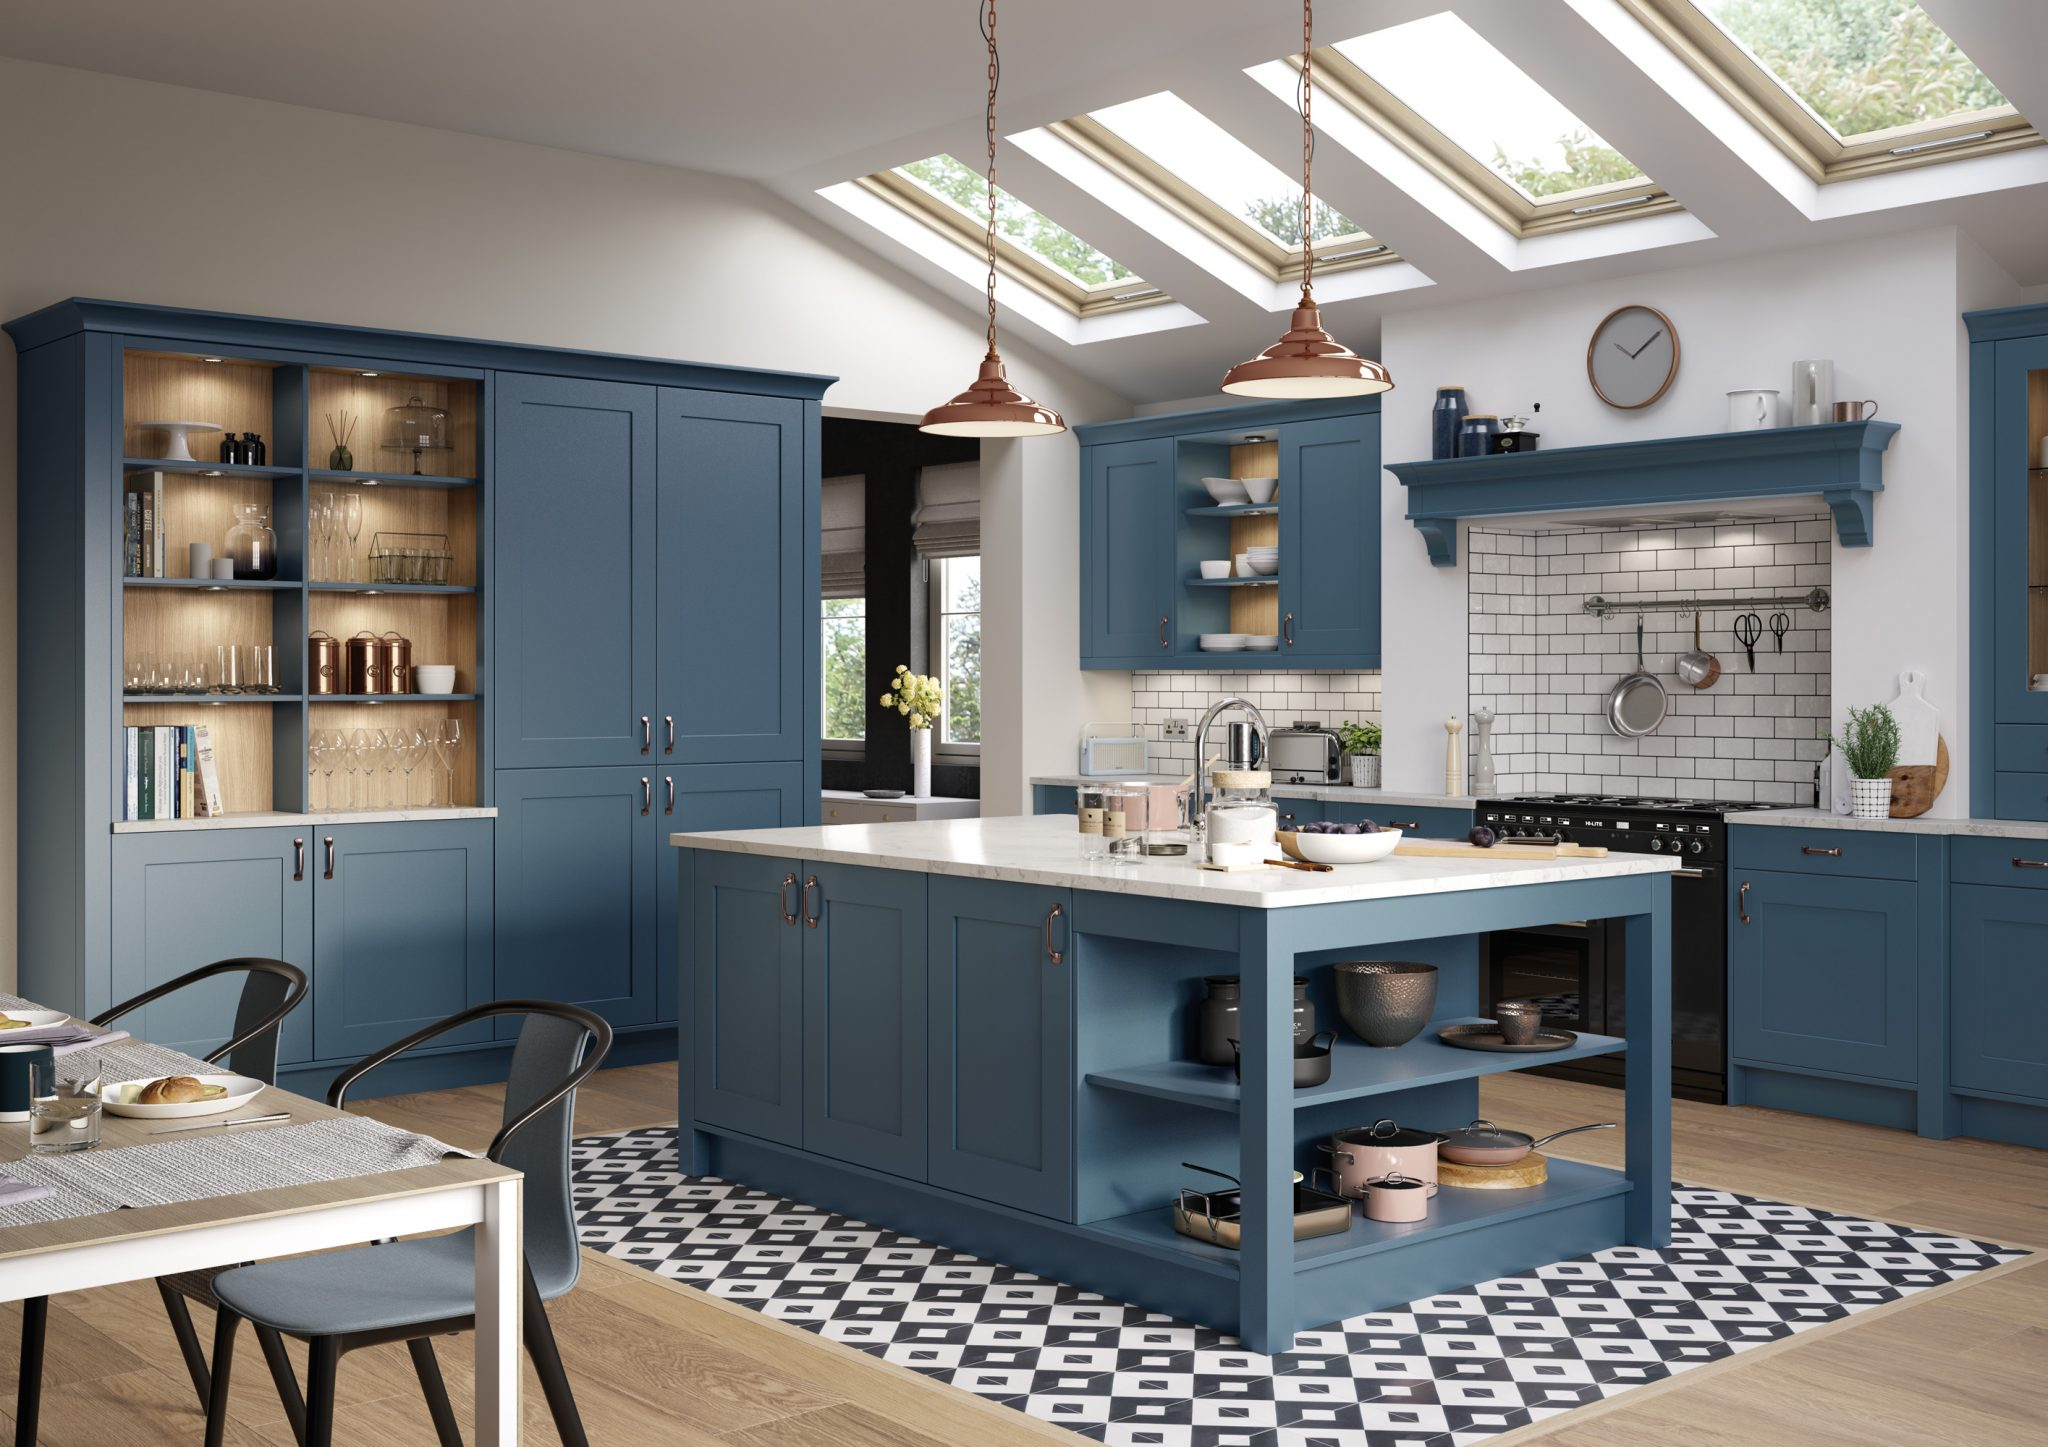 shaker style kitchen in bold blue, painted kitchen in france with island